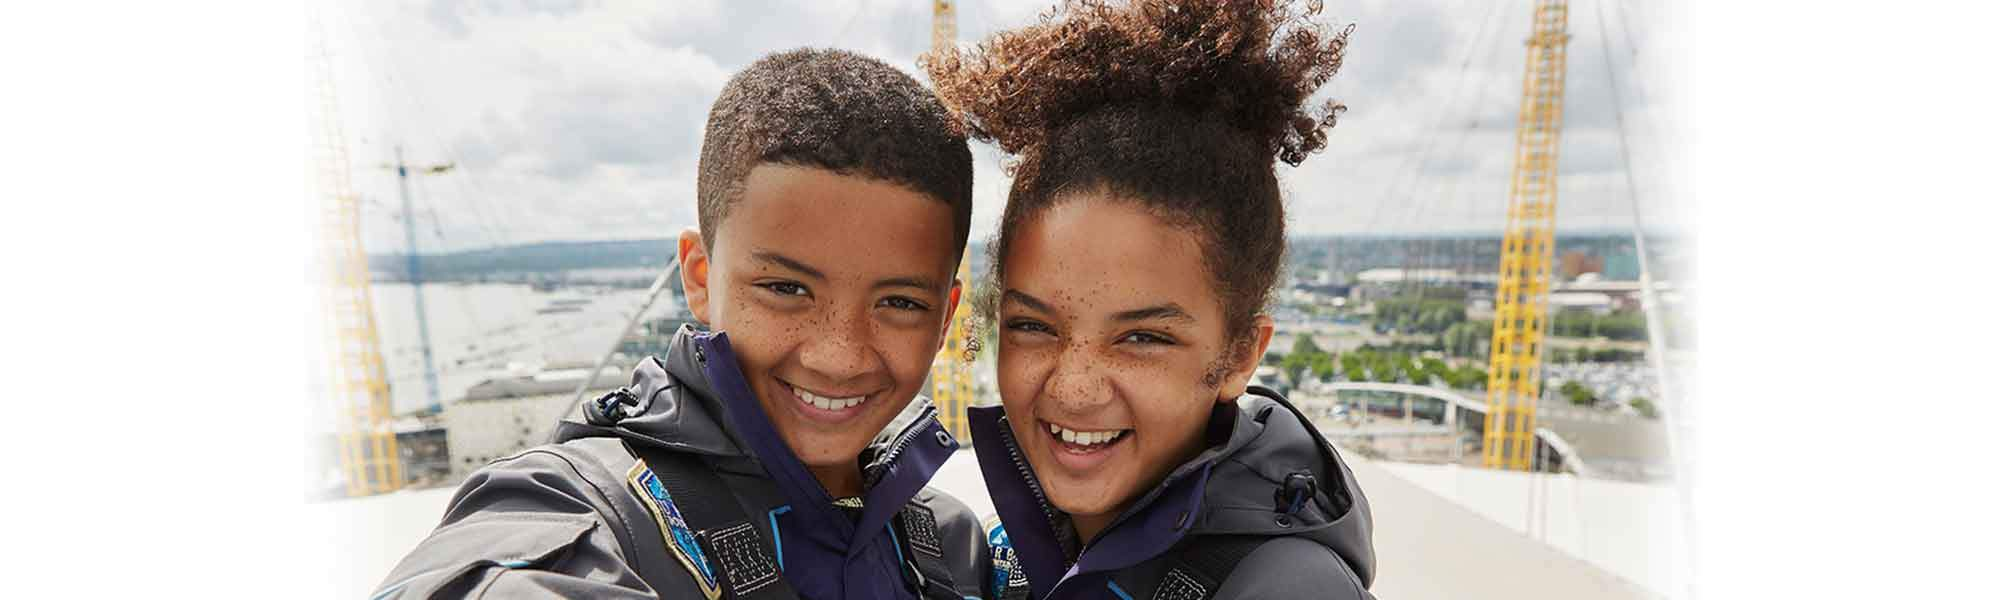 Little Bird Up at The O2 - An Exhilarating Day Out for Ages 9+, Exclusive: Save 10%